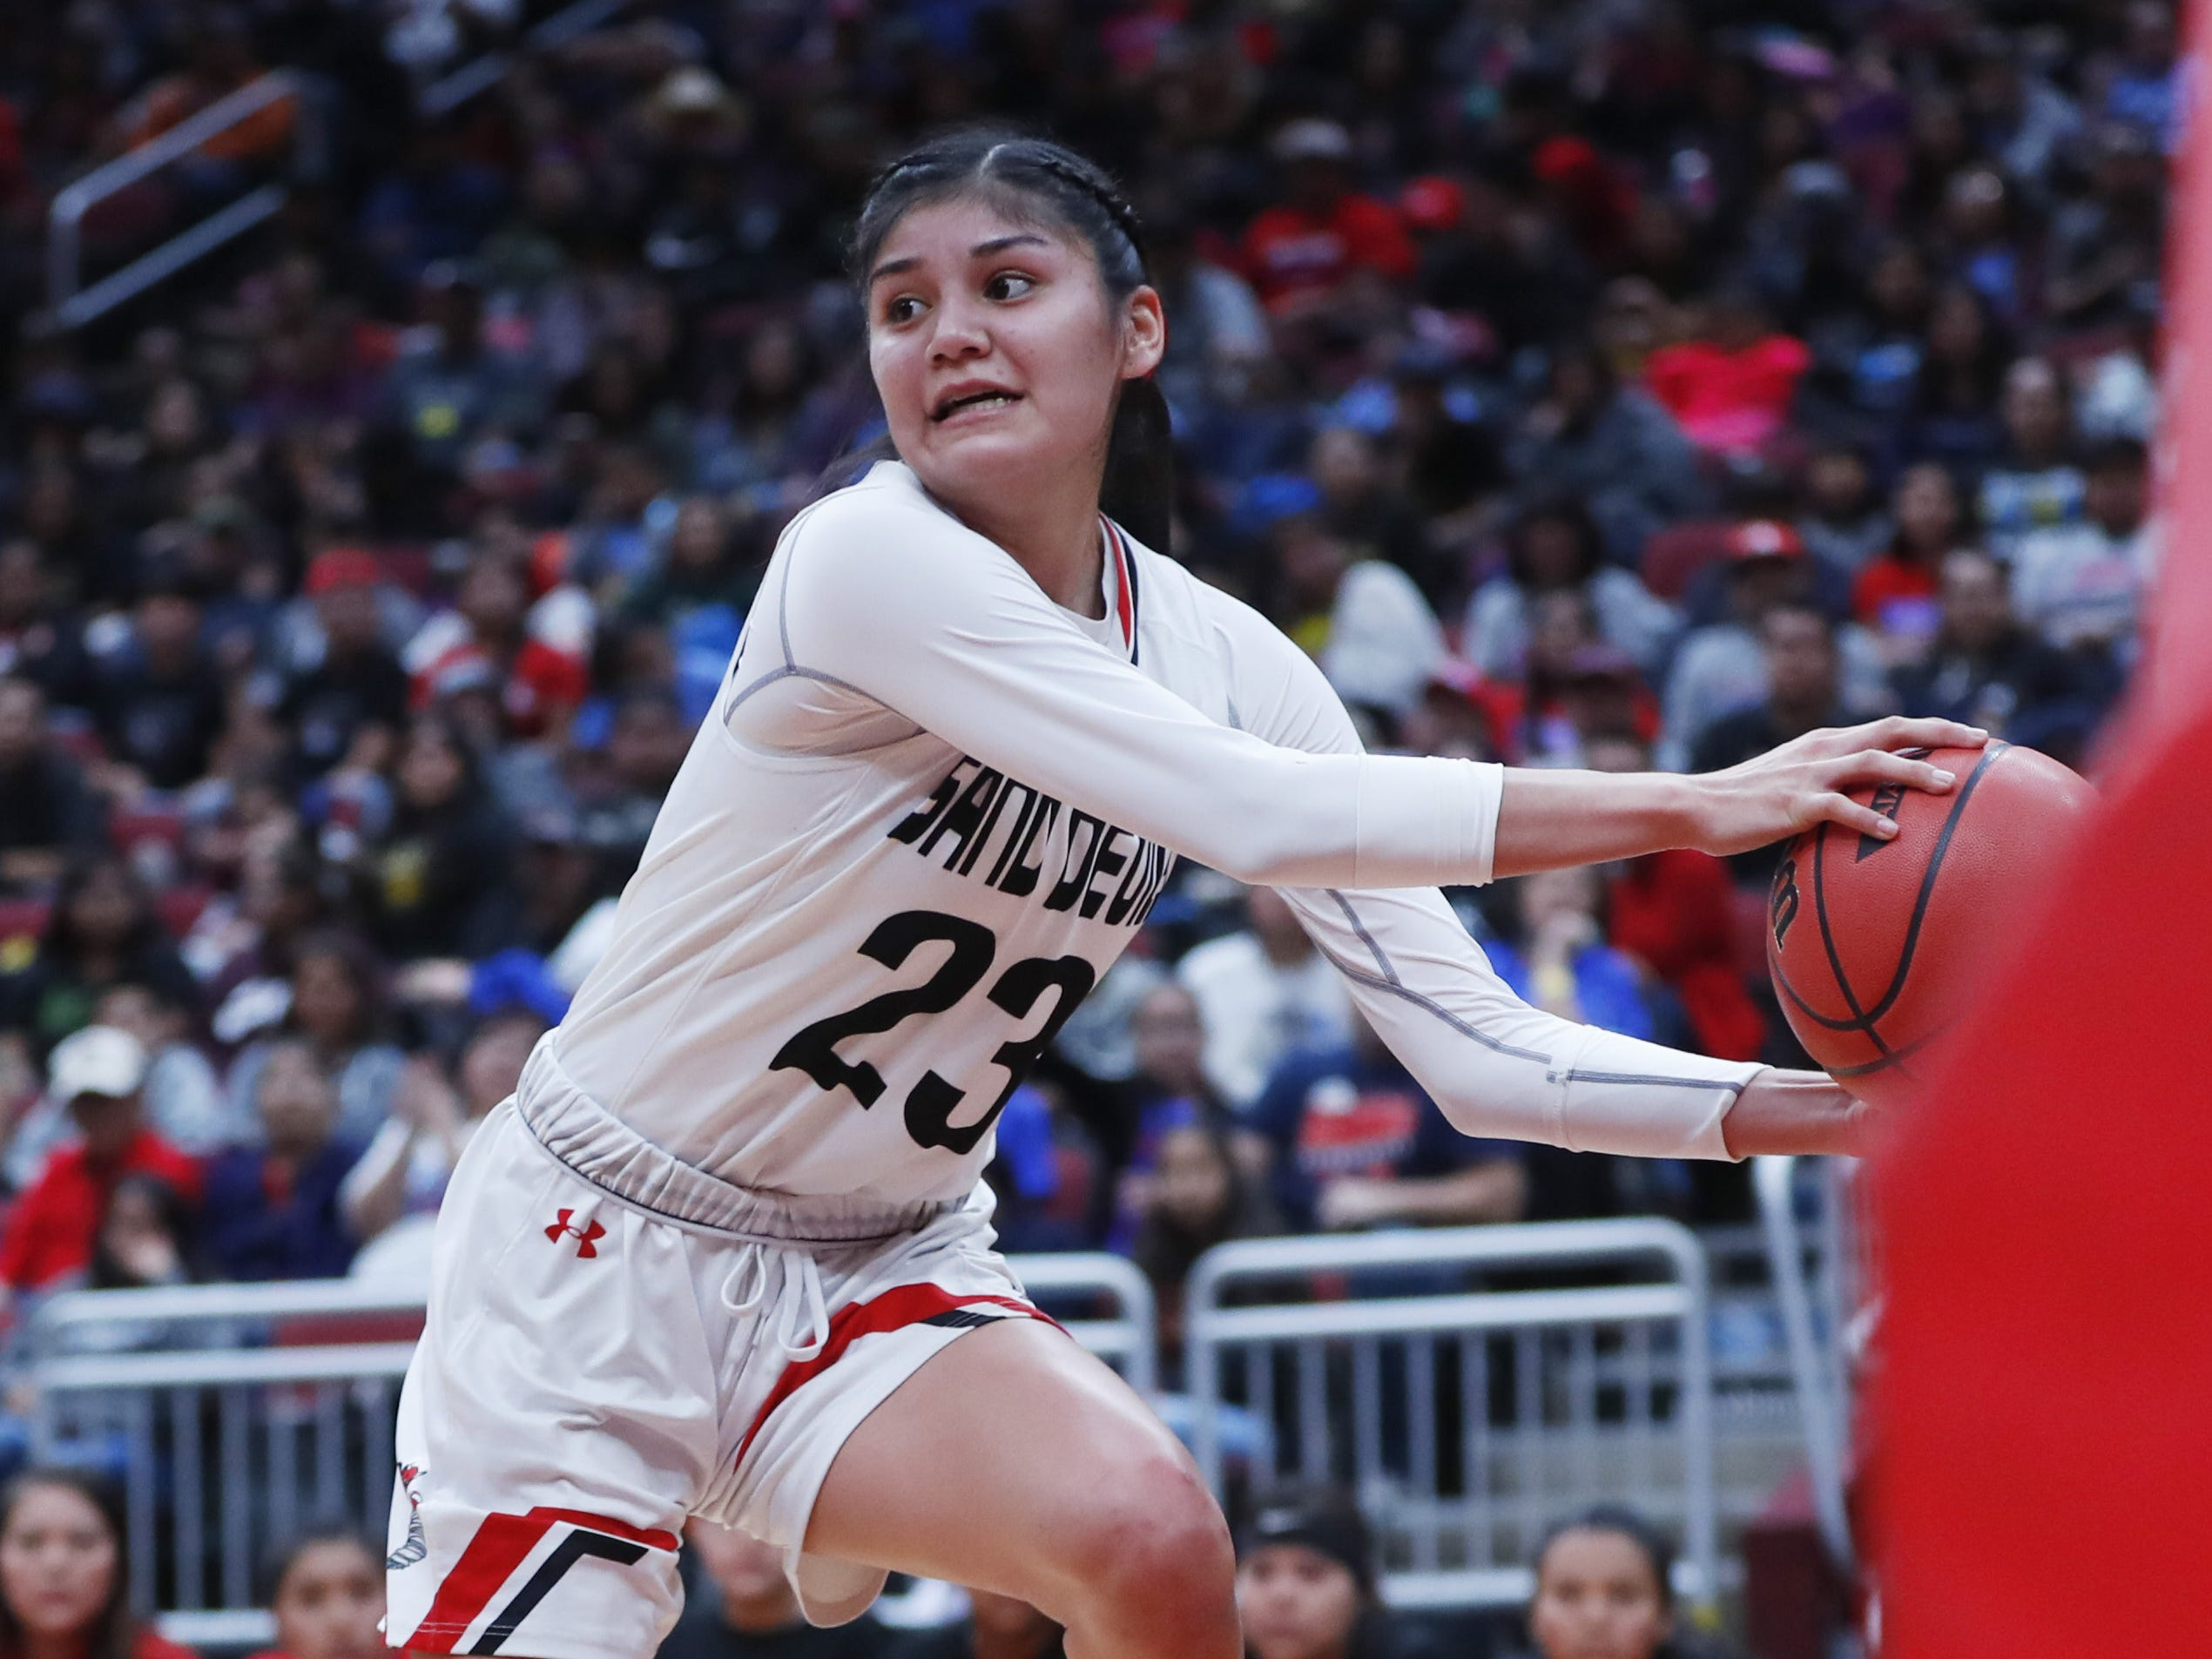 Page's Camryn Nockideneh (23) grabs a ball and saves it from out of bounds during the first half of the 3A girls basketball state championship game against Holbrook at Gila River Arena in Glendale, Ariz. on February 23, 2019.